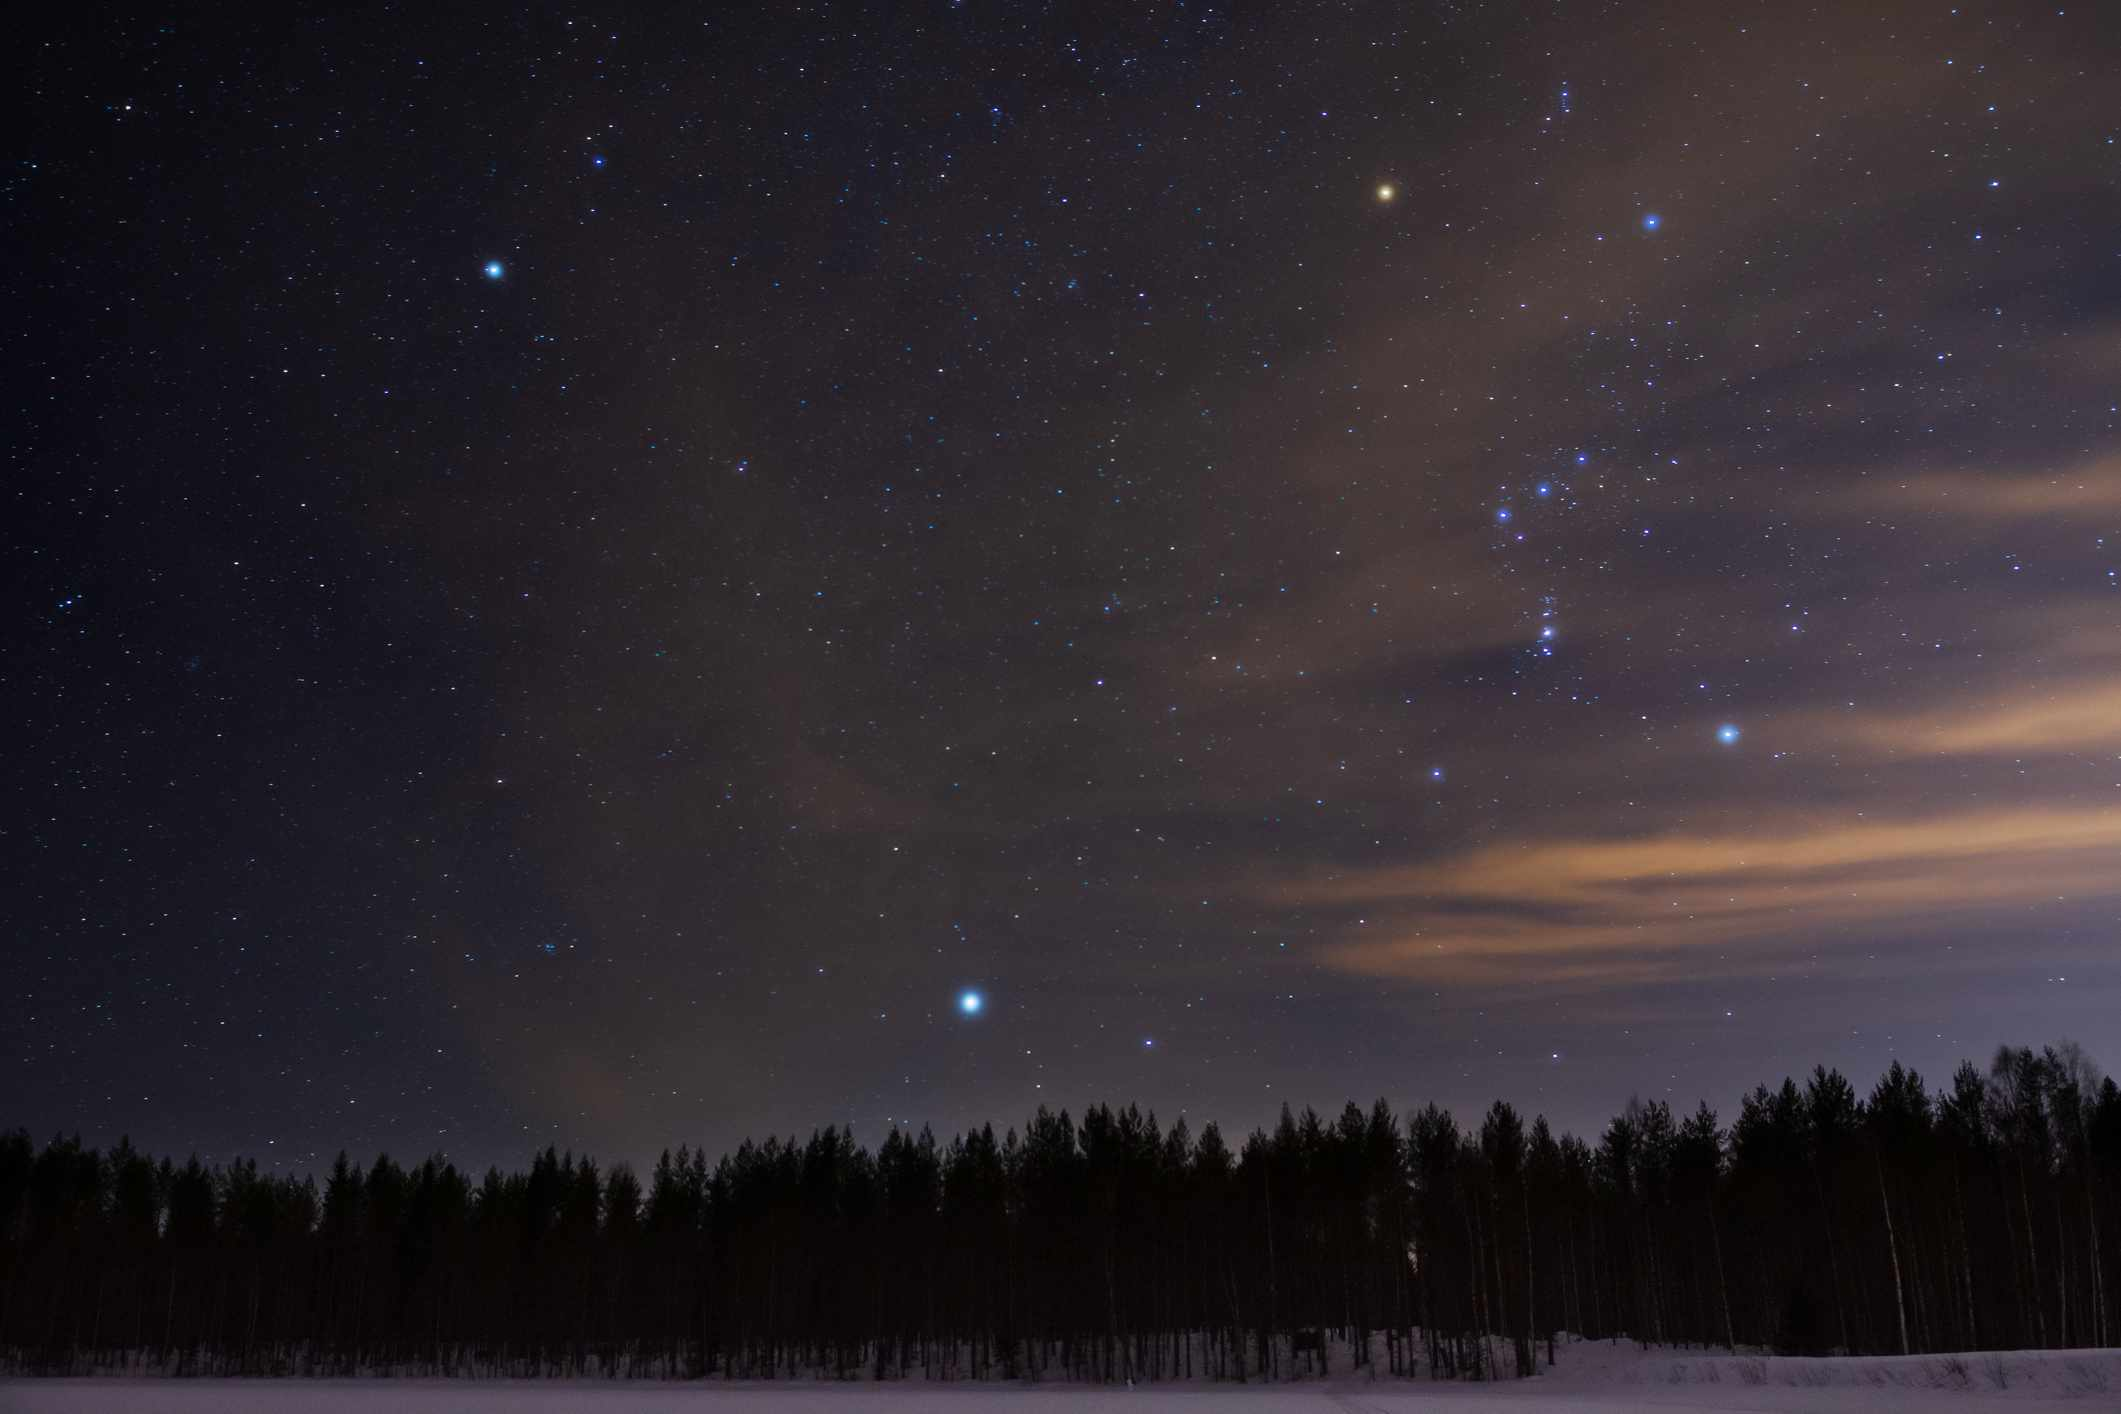 What is the brightest star in the sky?